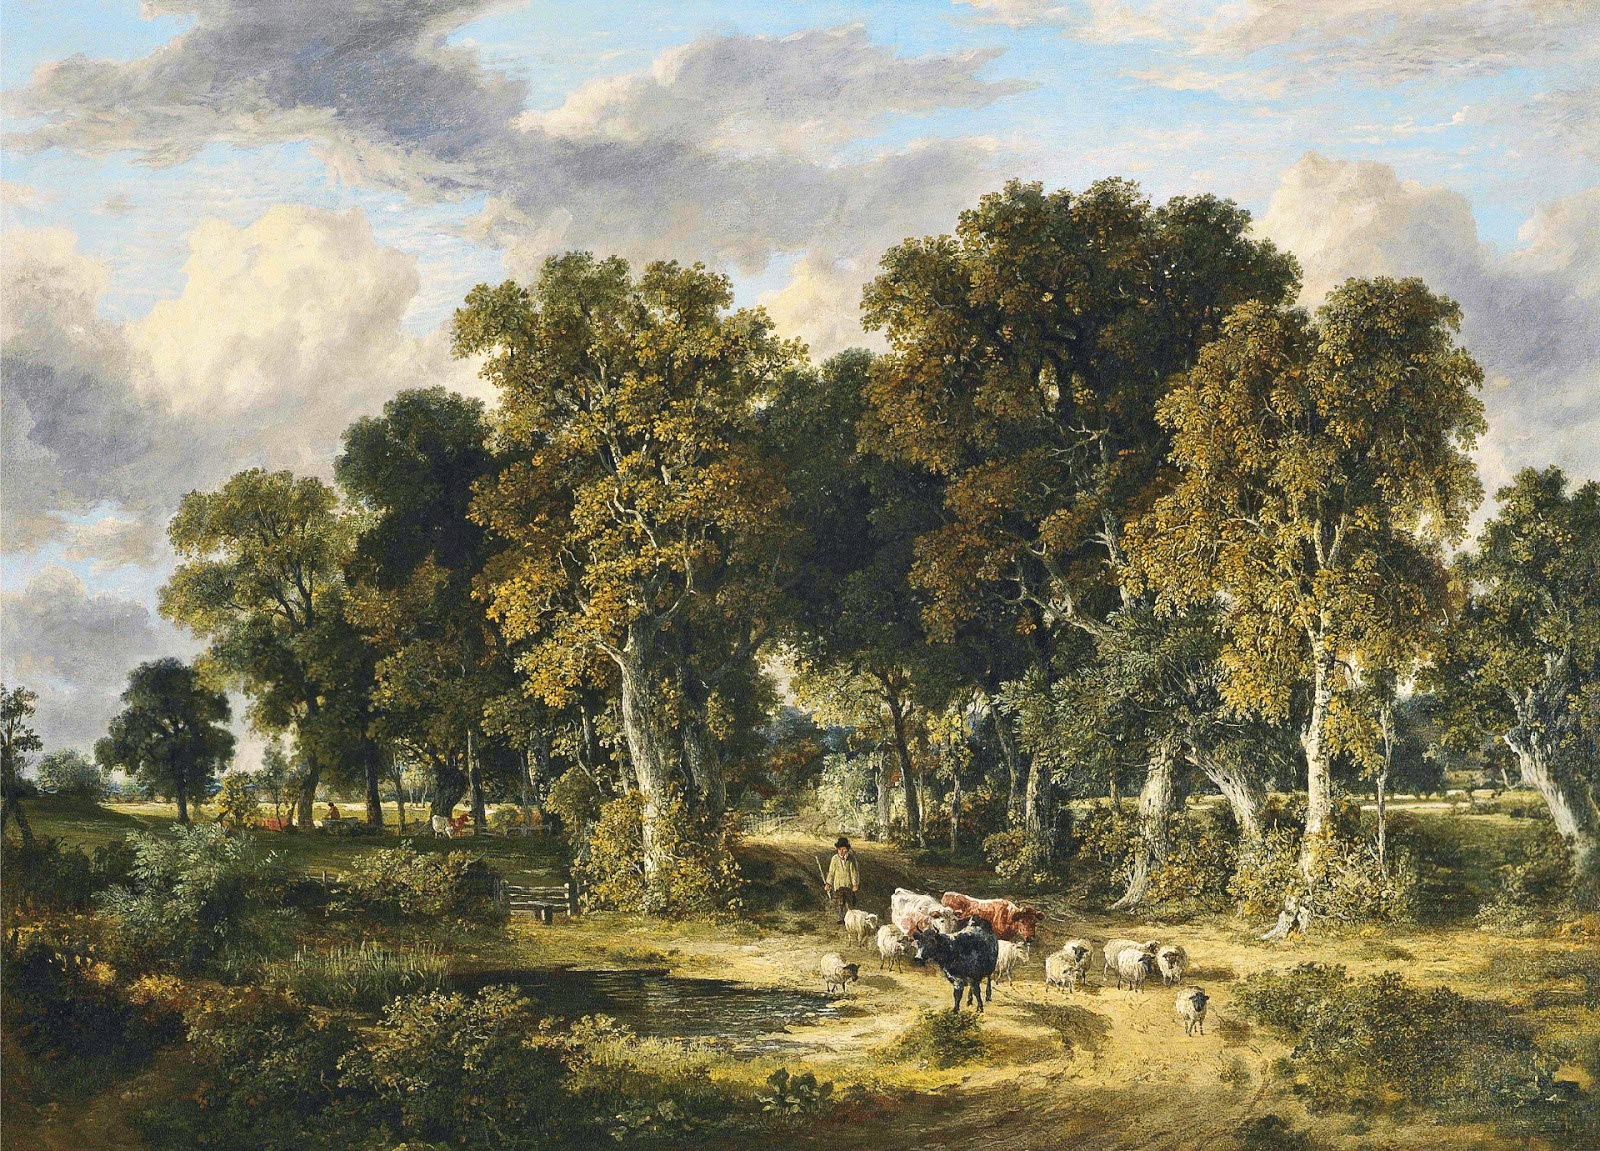 James Stark, Drover with Cattle and Sheep